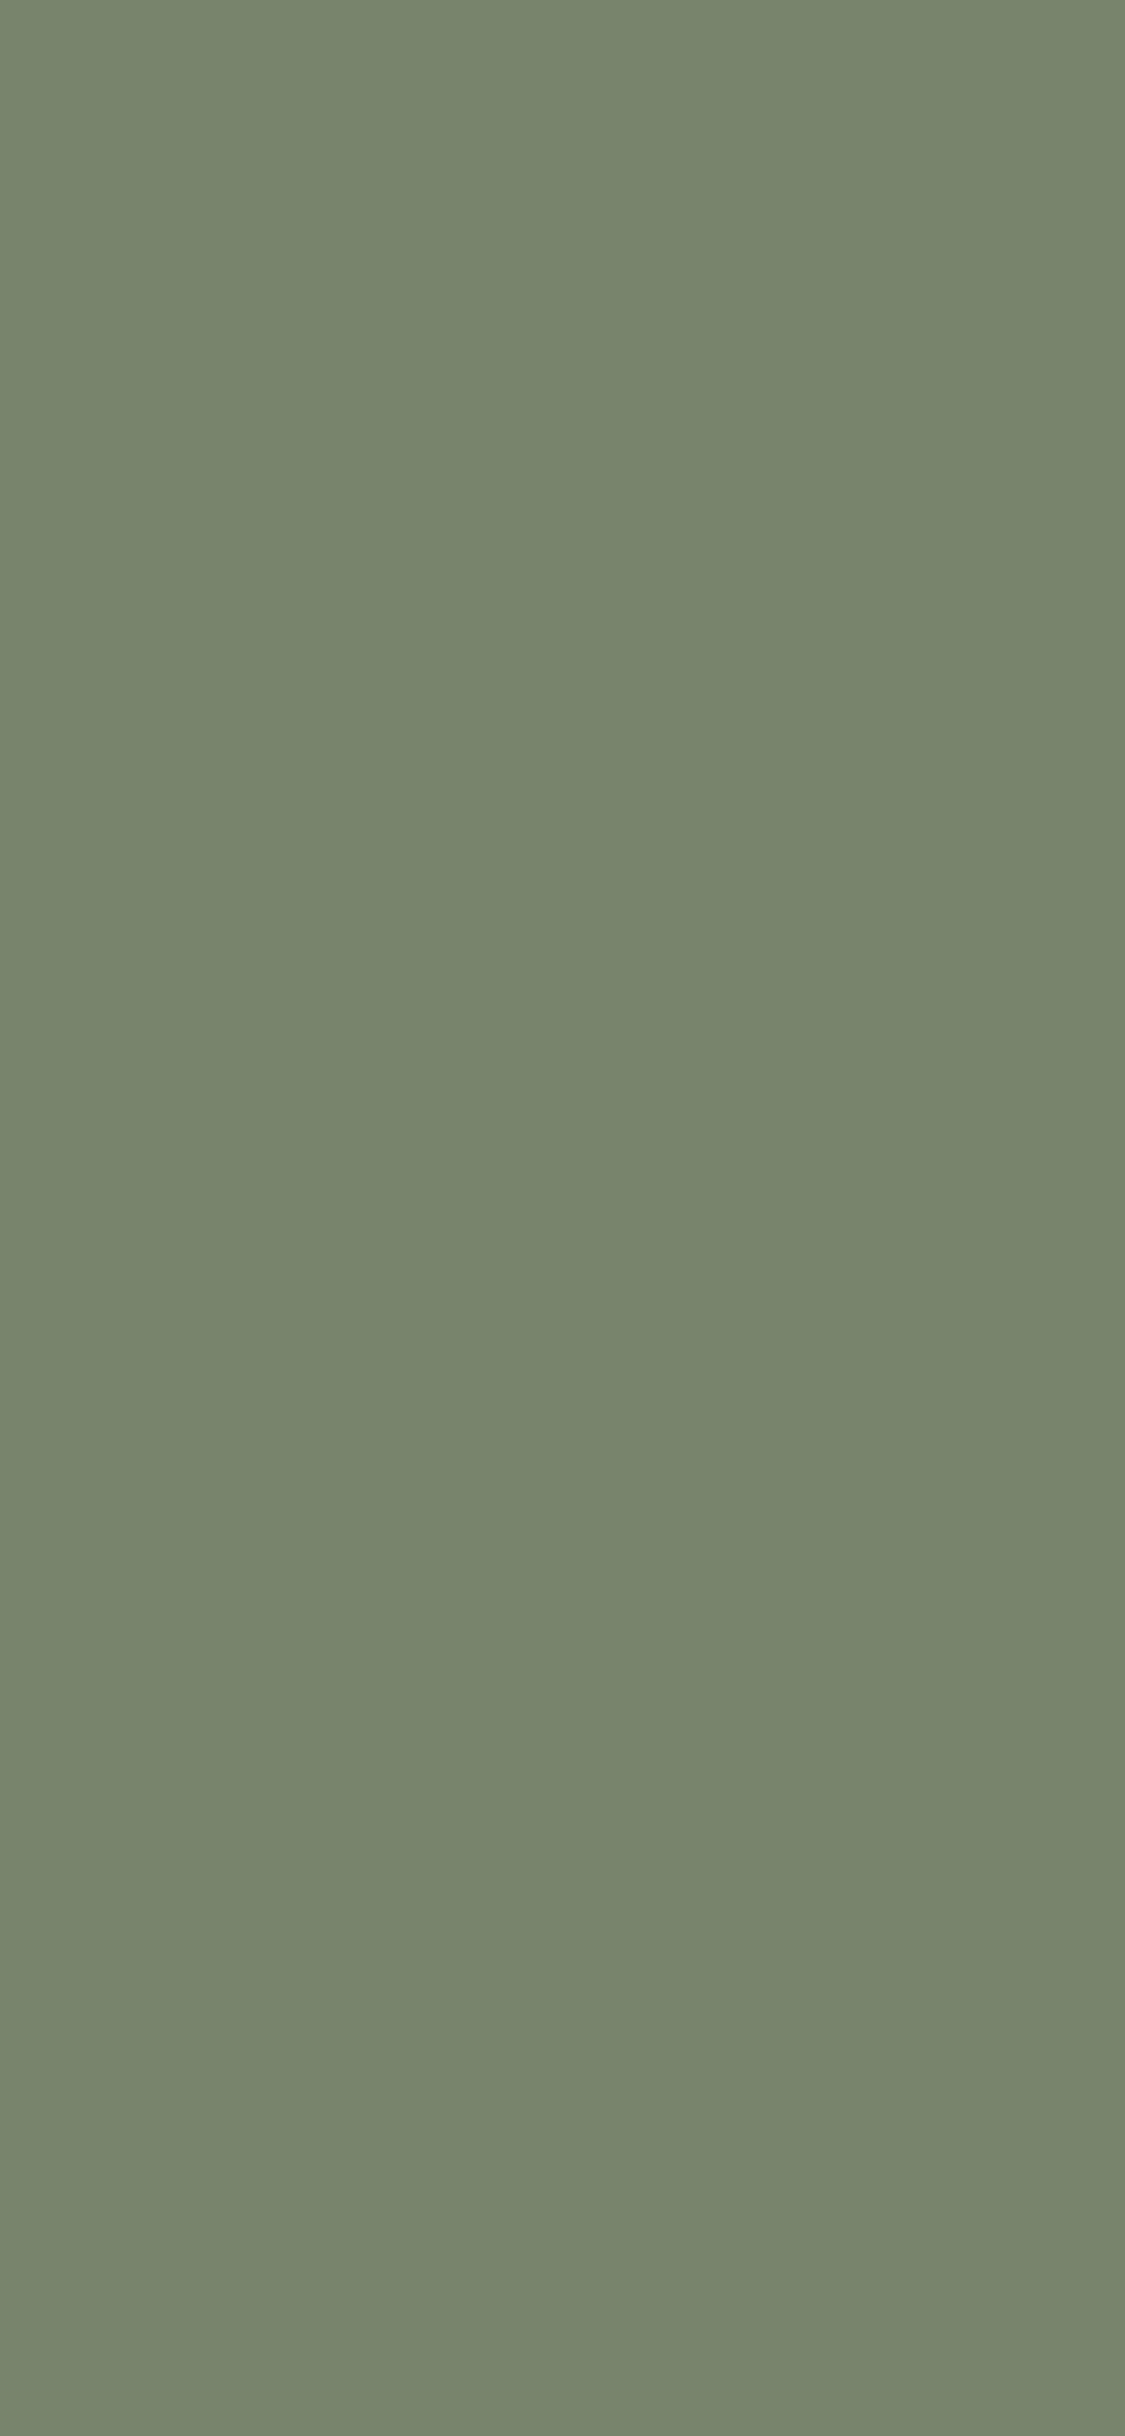 1125x2436 Camouflage Green Solid Color Background